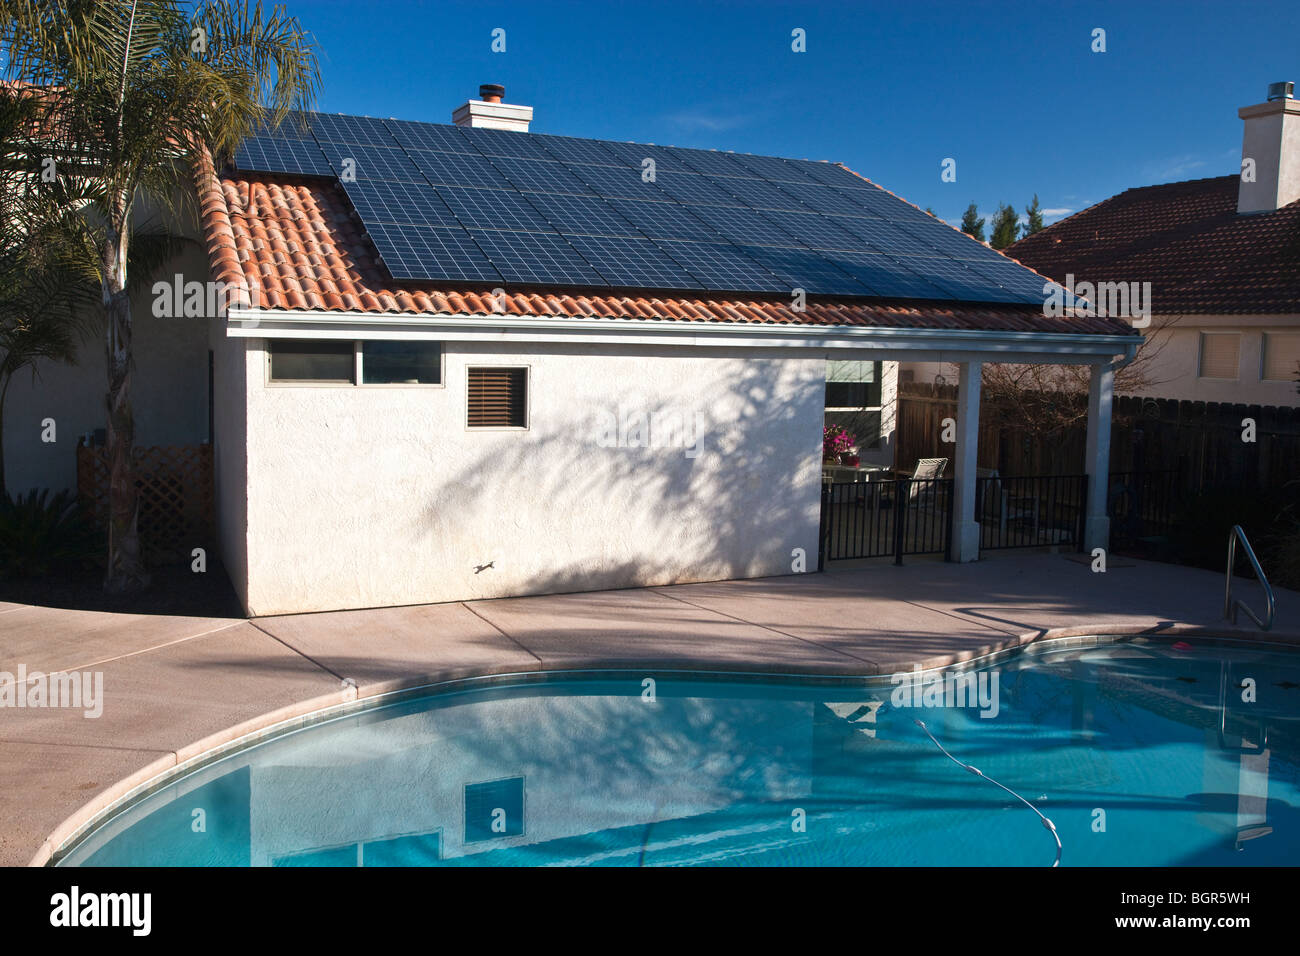 Solar electric panels, residence roof. - Stock Image